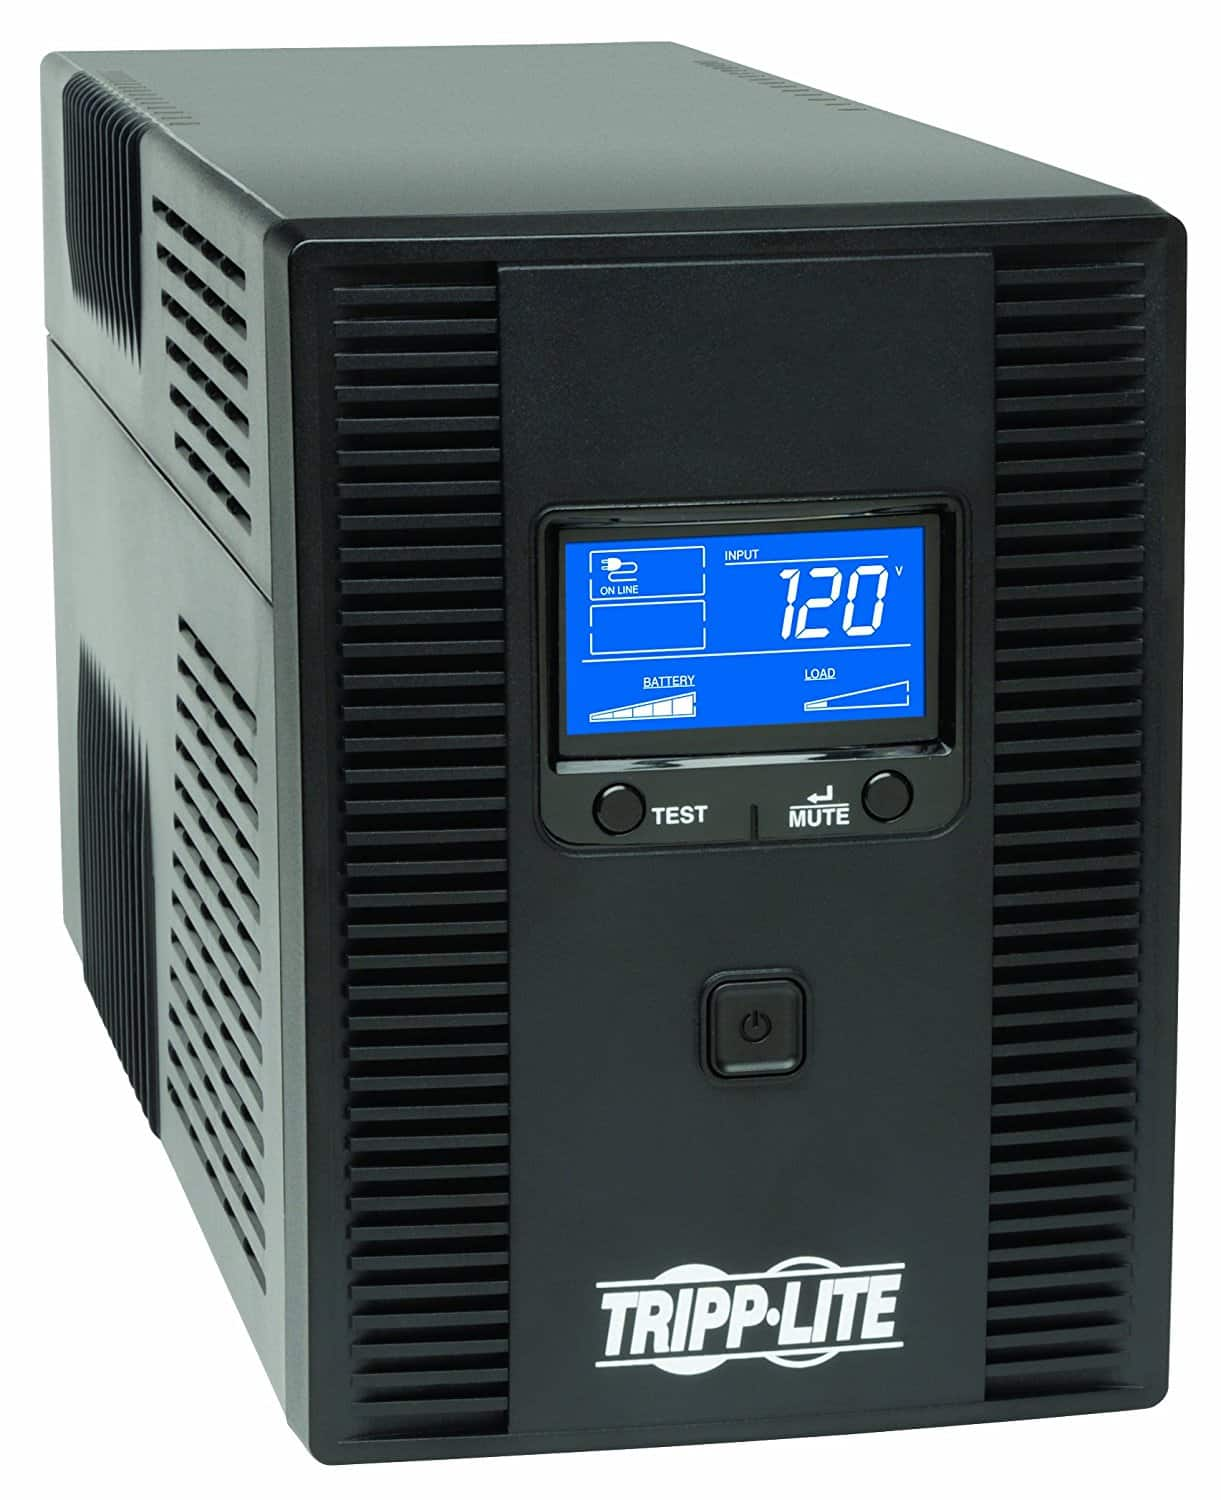 Tripp Lite 1500VA 900W 10-Outlet LCD Battery Back Up UPS (SMART1500LCDT) $119.92 + Free Shipping